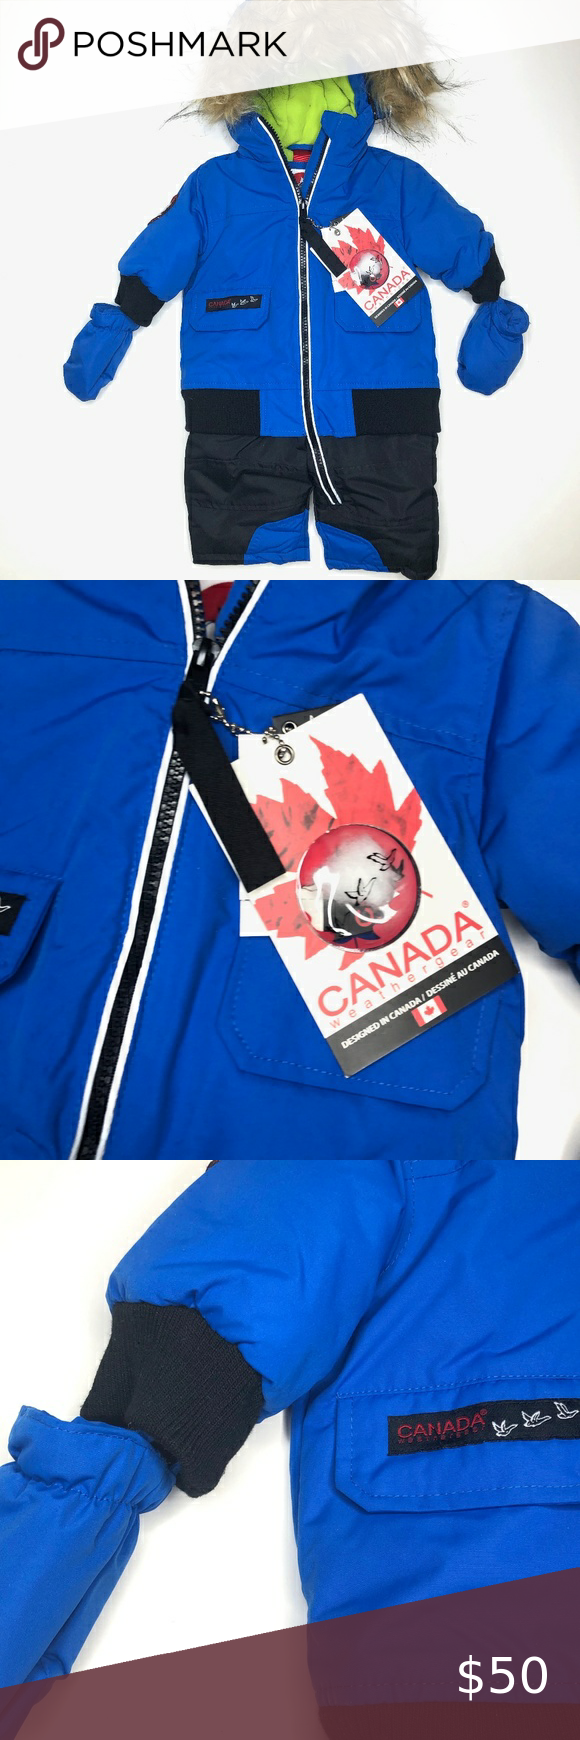 New Canada Weather Gear Blue Snowsuit 3 6mo Brand New With Tags Blue Canada Weather Gear Snowsuit For 3 6 Months Water Pr In 2020 Snow Suit Kids Jacket Clothes Design